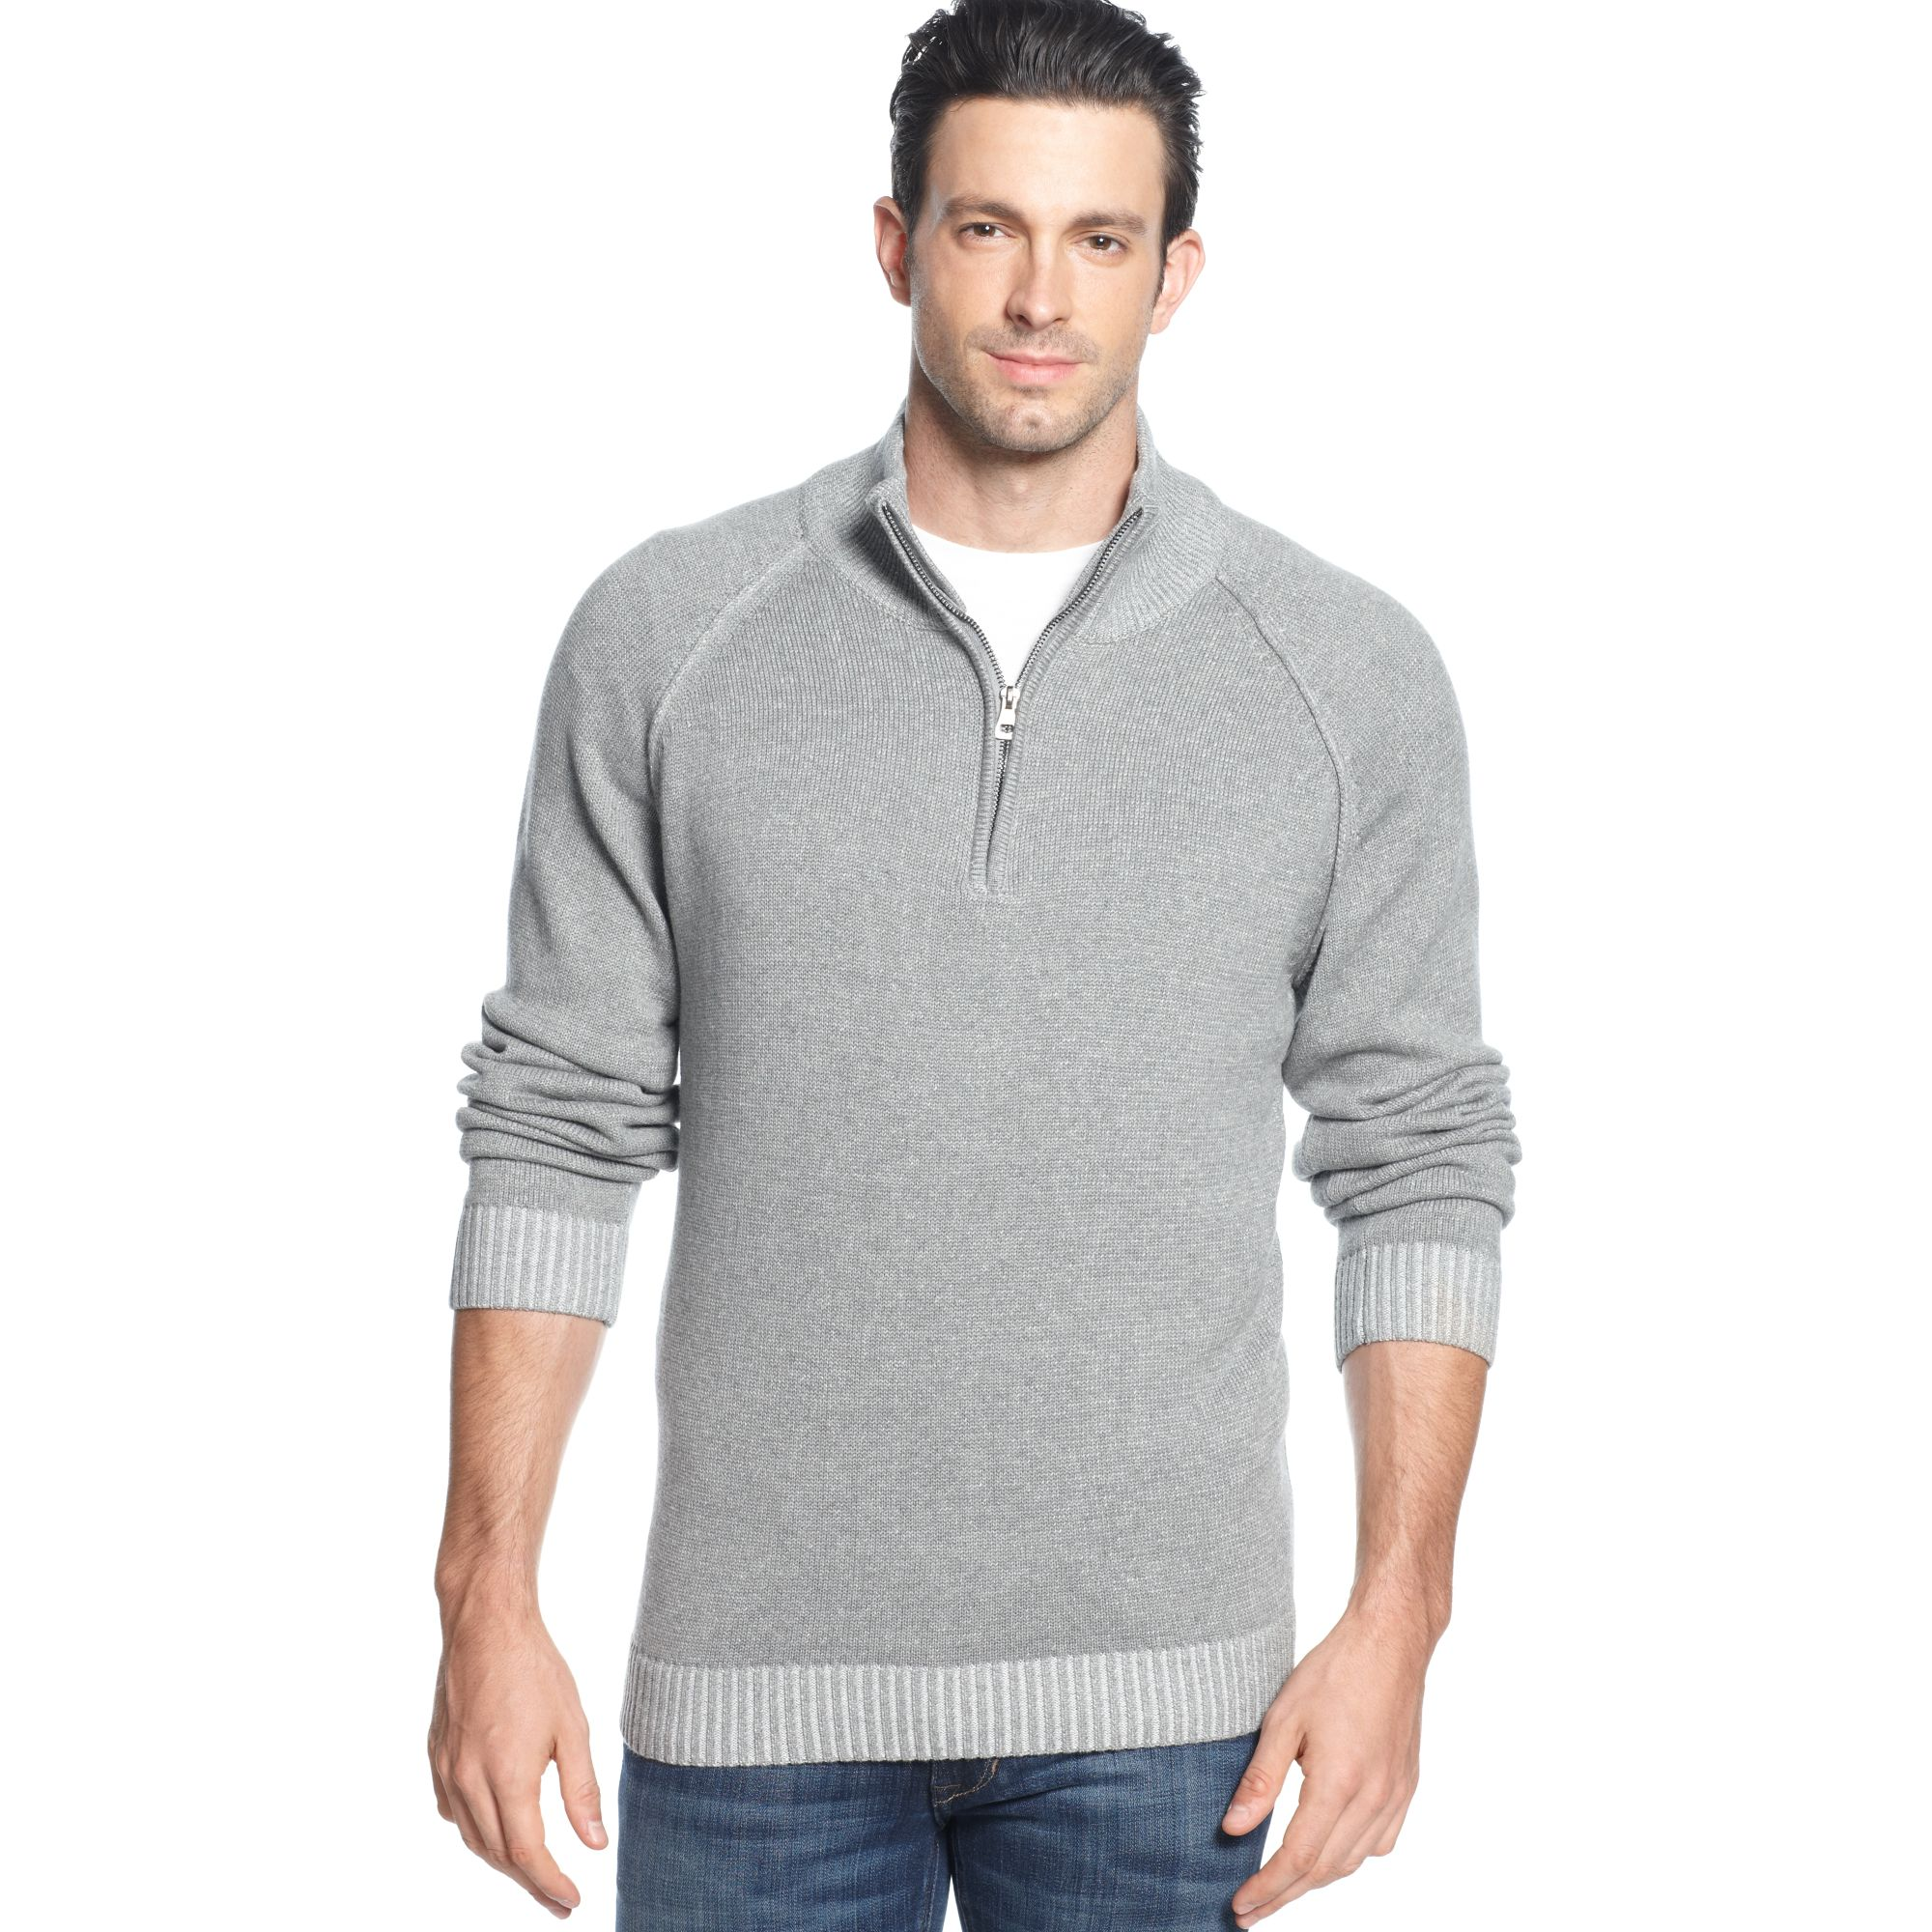 Weatherproof Quarter Zip Mock Neck Cotton Pullover in Gray for Men ...